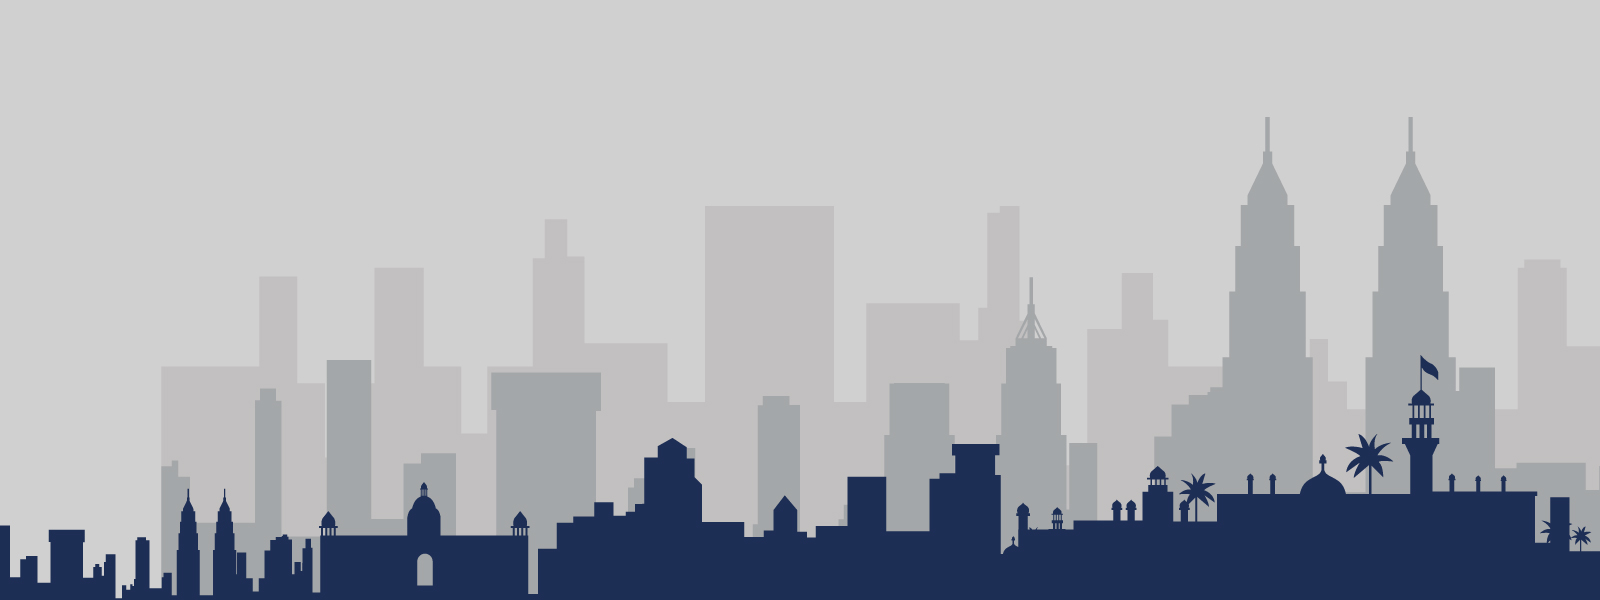 An illustrated graphic of a city skyline